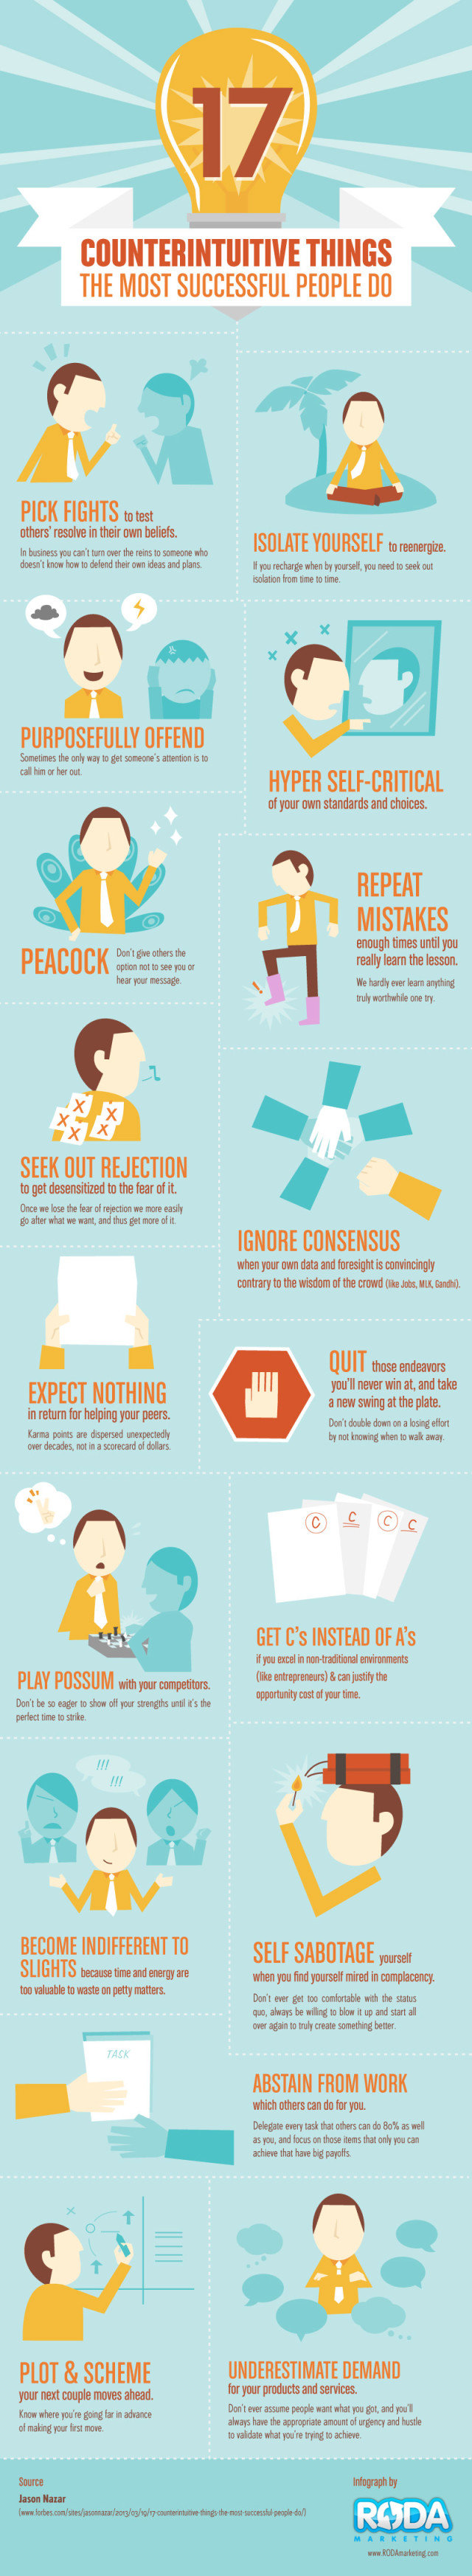 Counterintuitive Things the most successful people do #Infographic